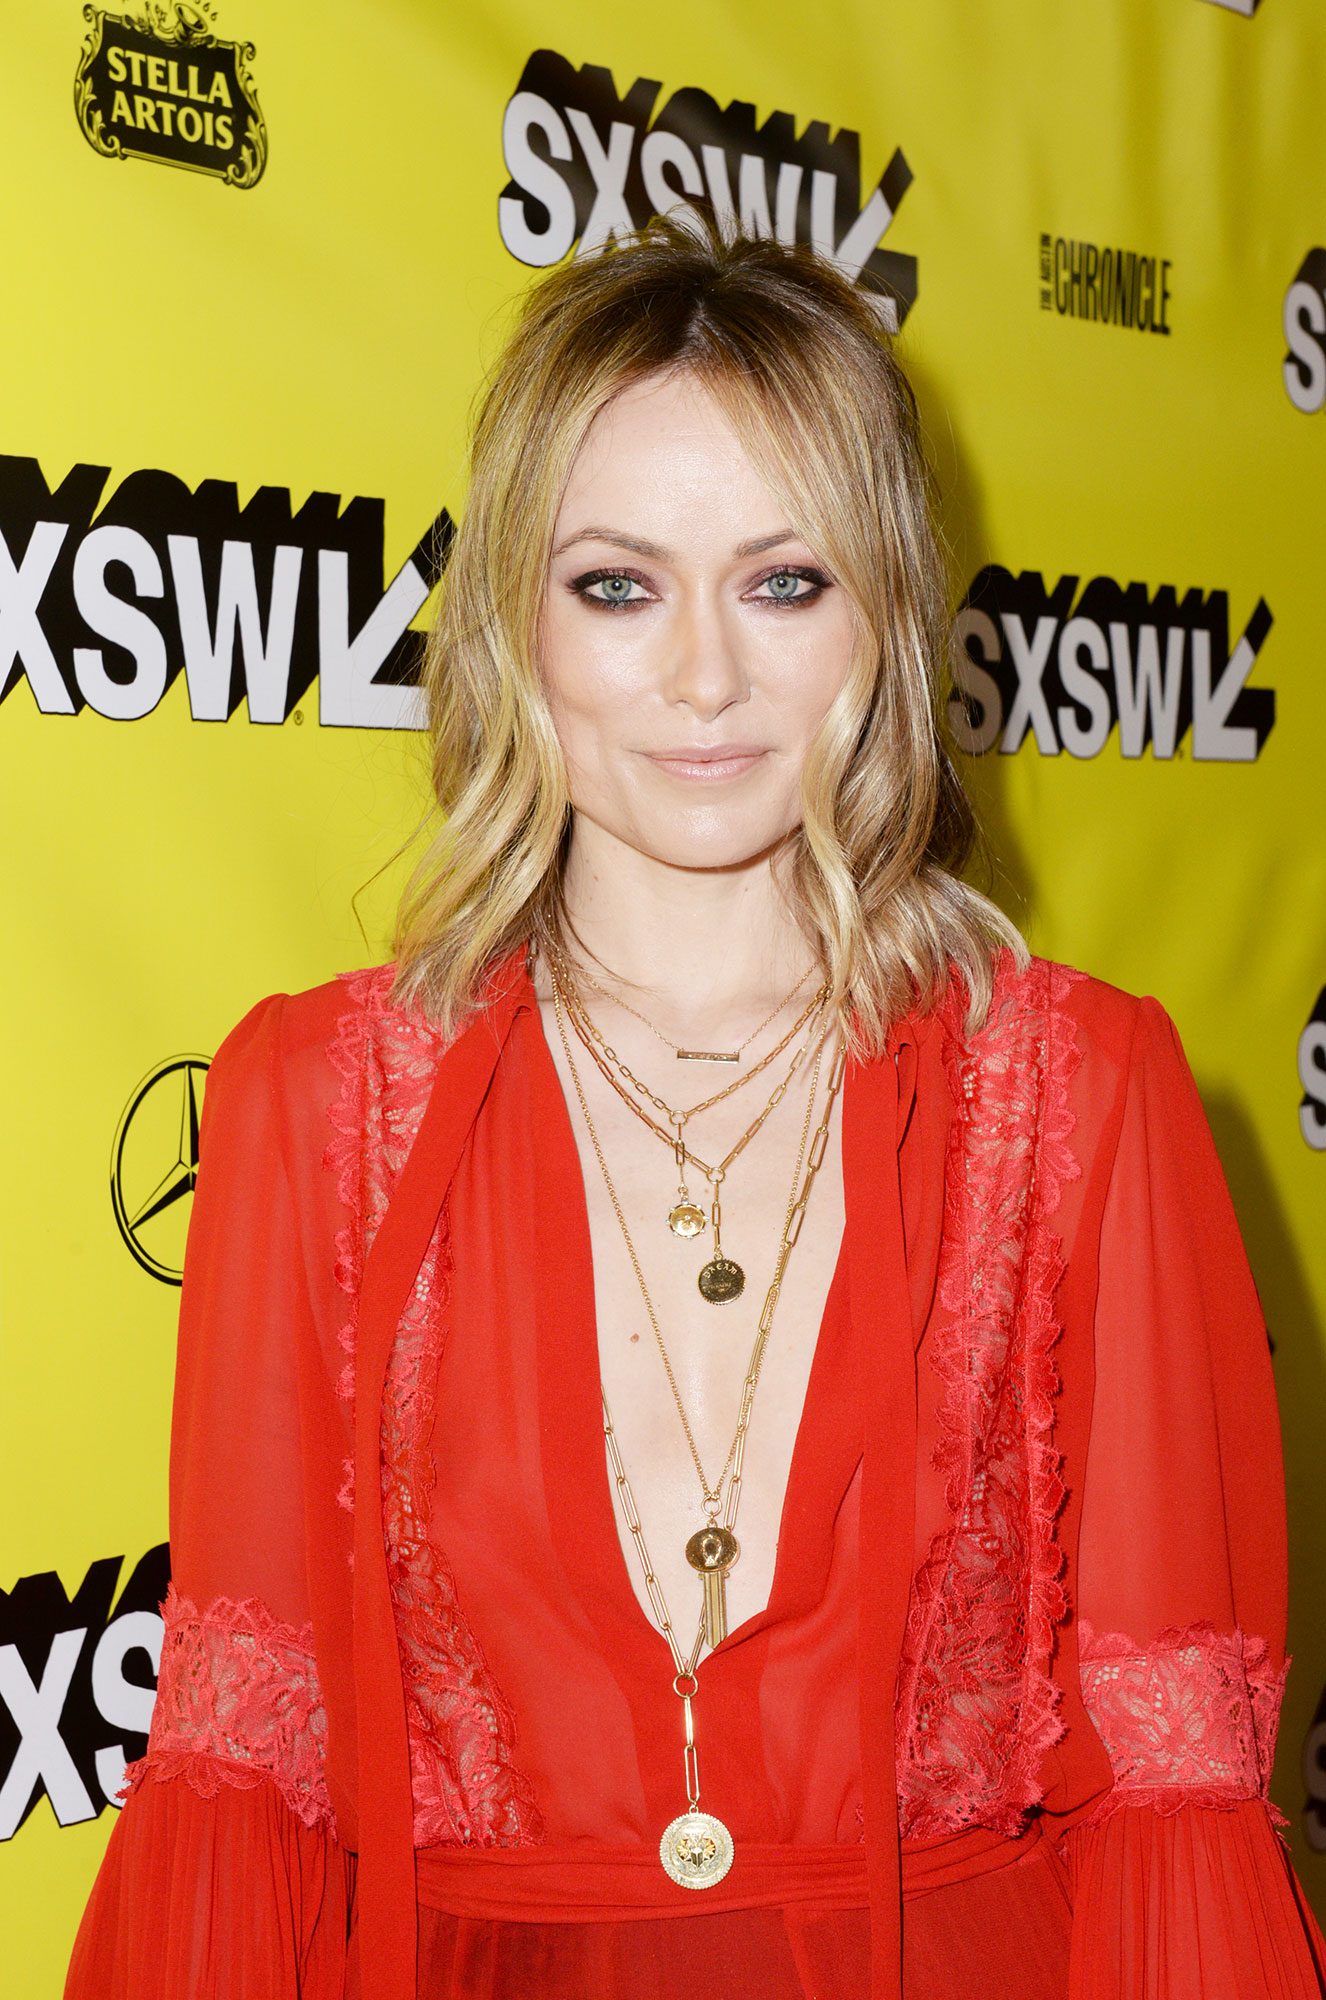 Olivia Wilde Celebs Are Here With All the Coachella Beauty Inspo You Need - In addition to coating her lids in a rich plum color, makeup pro Mélanie Inglessis lined the Booksmart director's bottom lashline at SXSW for a sultry effect. Oh, and special shoutout to her bedhead waves.